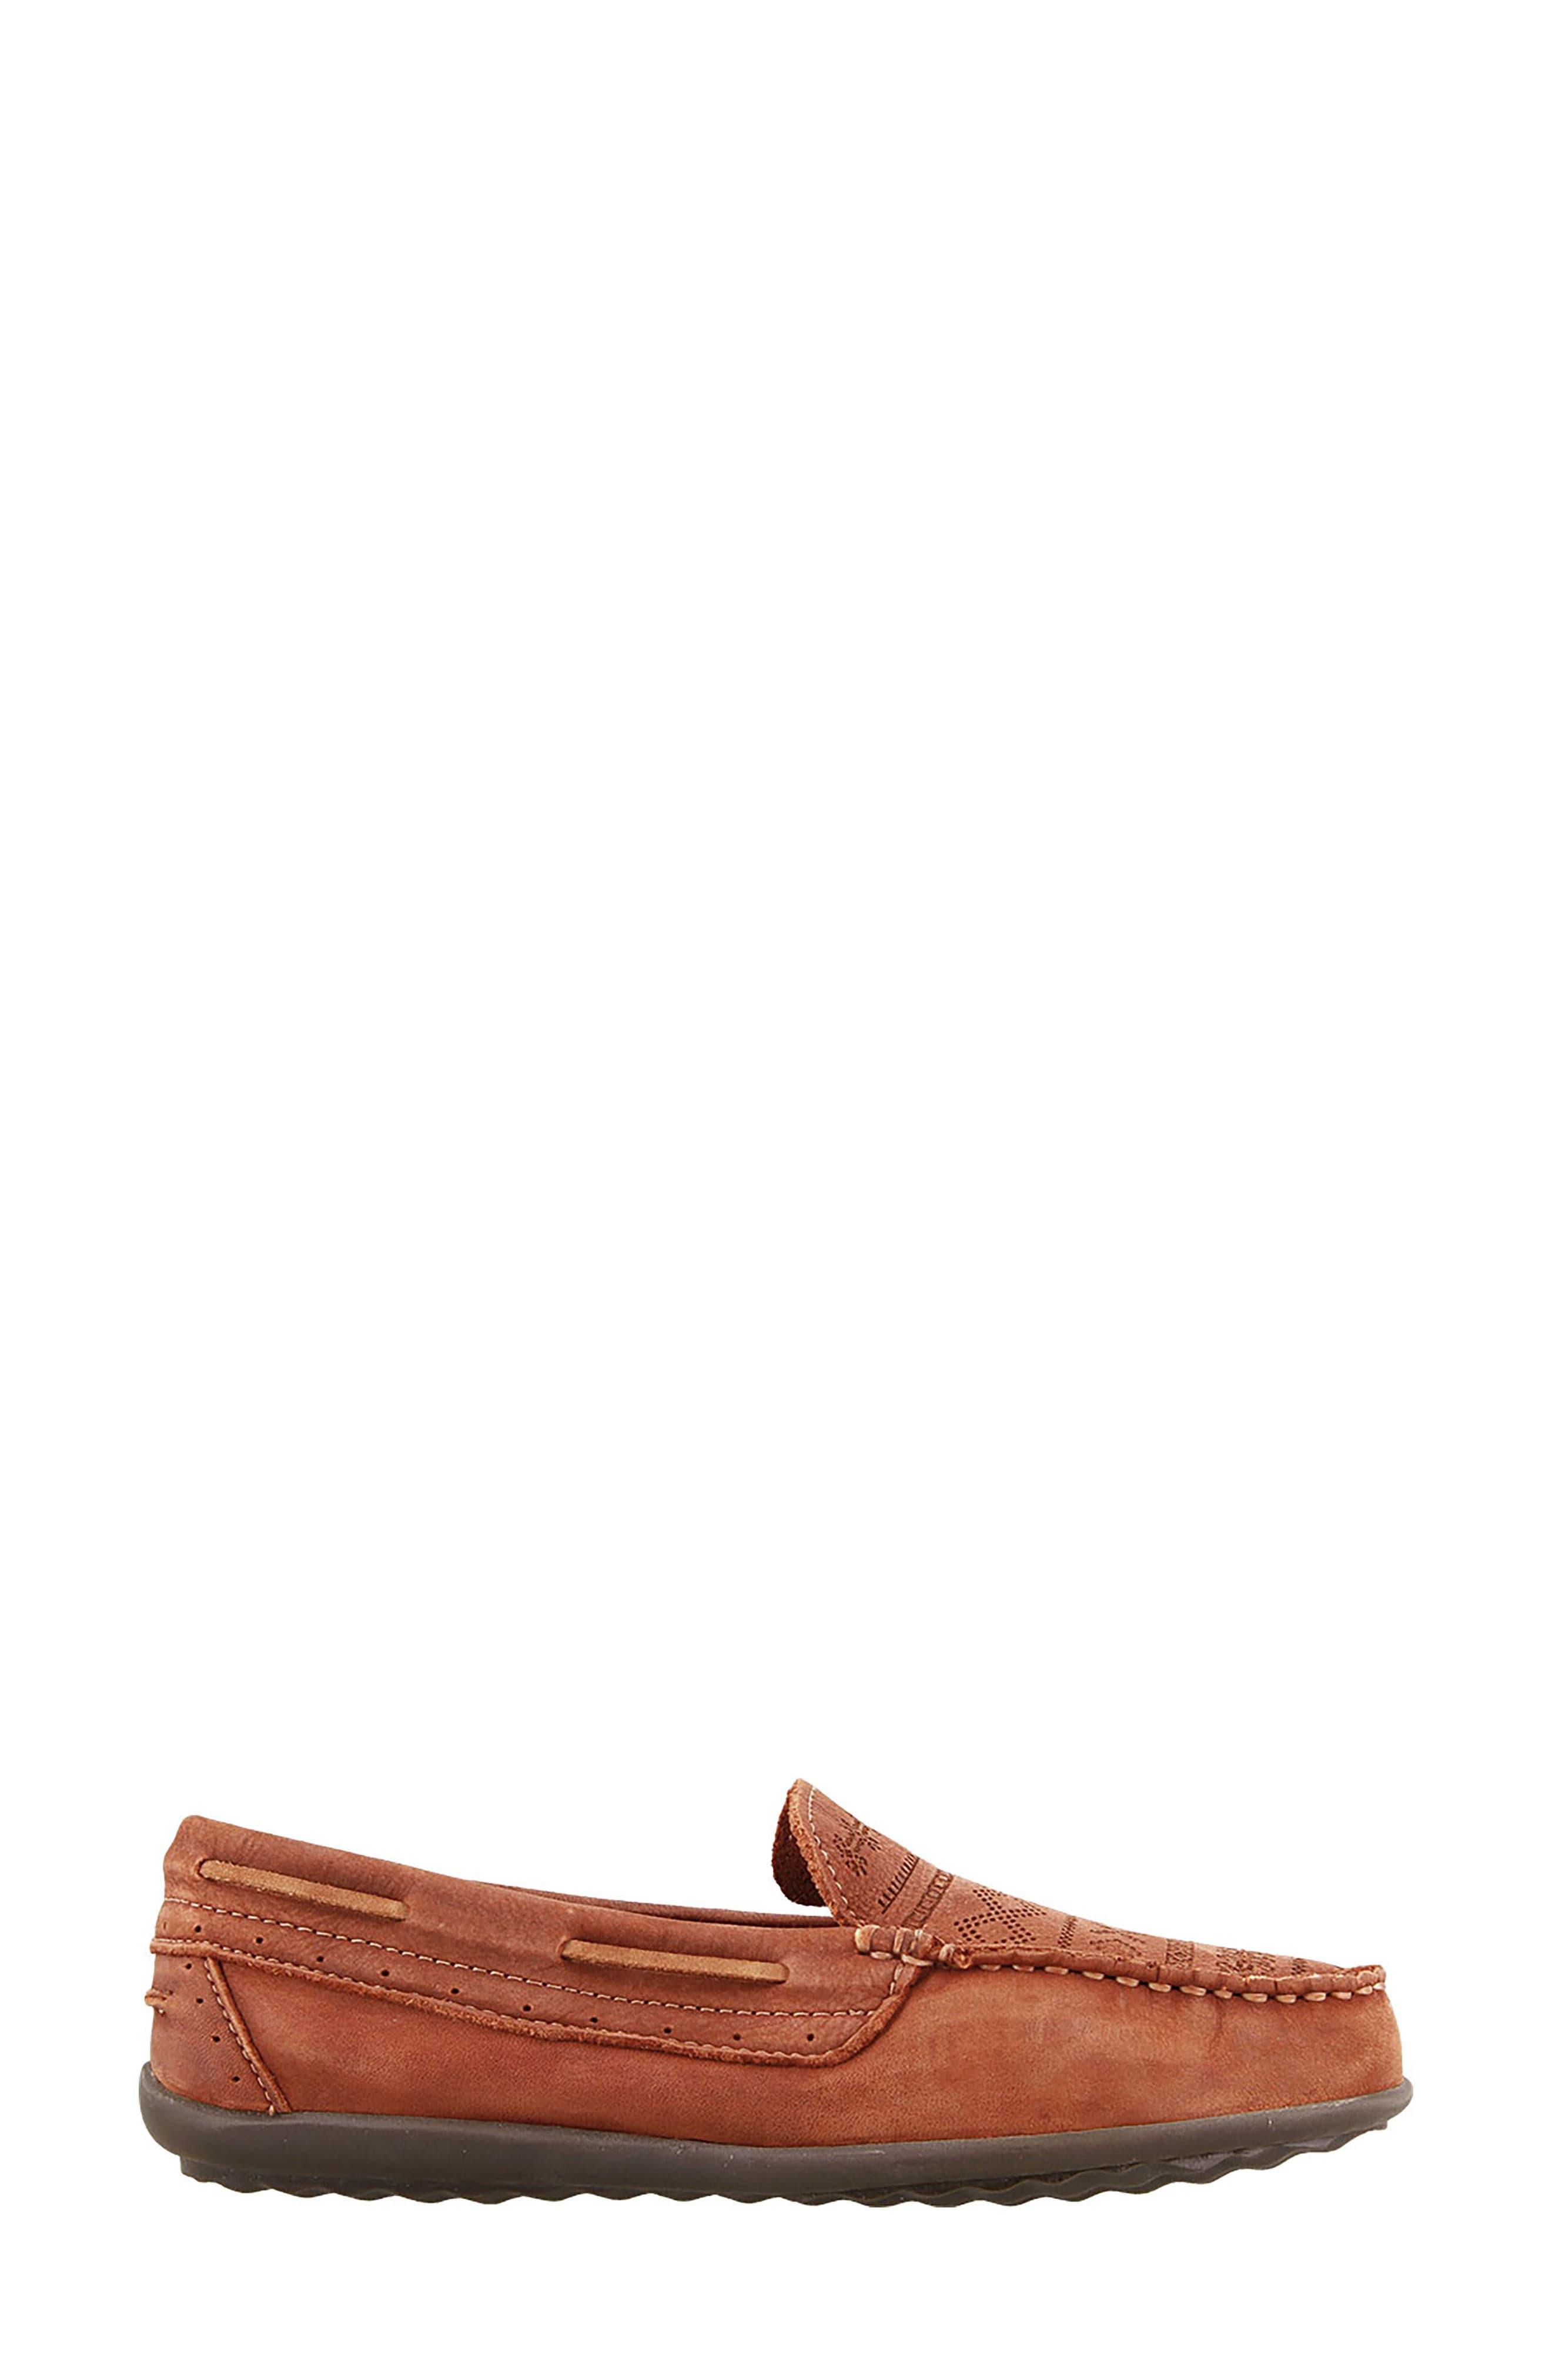 Heritage Moccasin Flat,                             Alternate thumbnail 3, color,                             Spice Red Leather